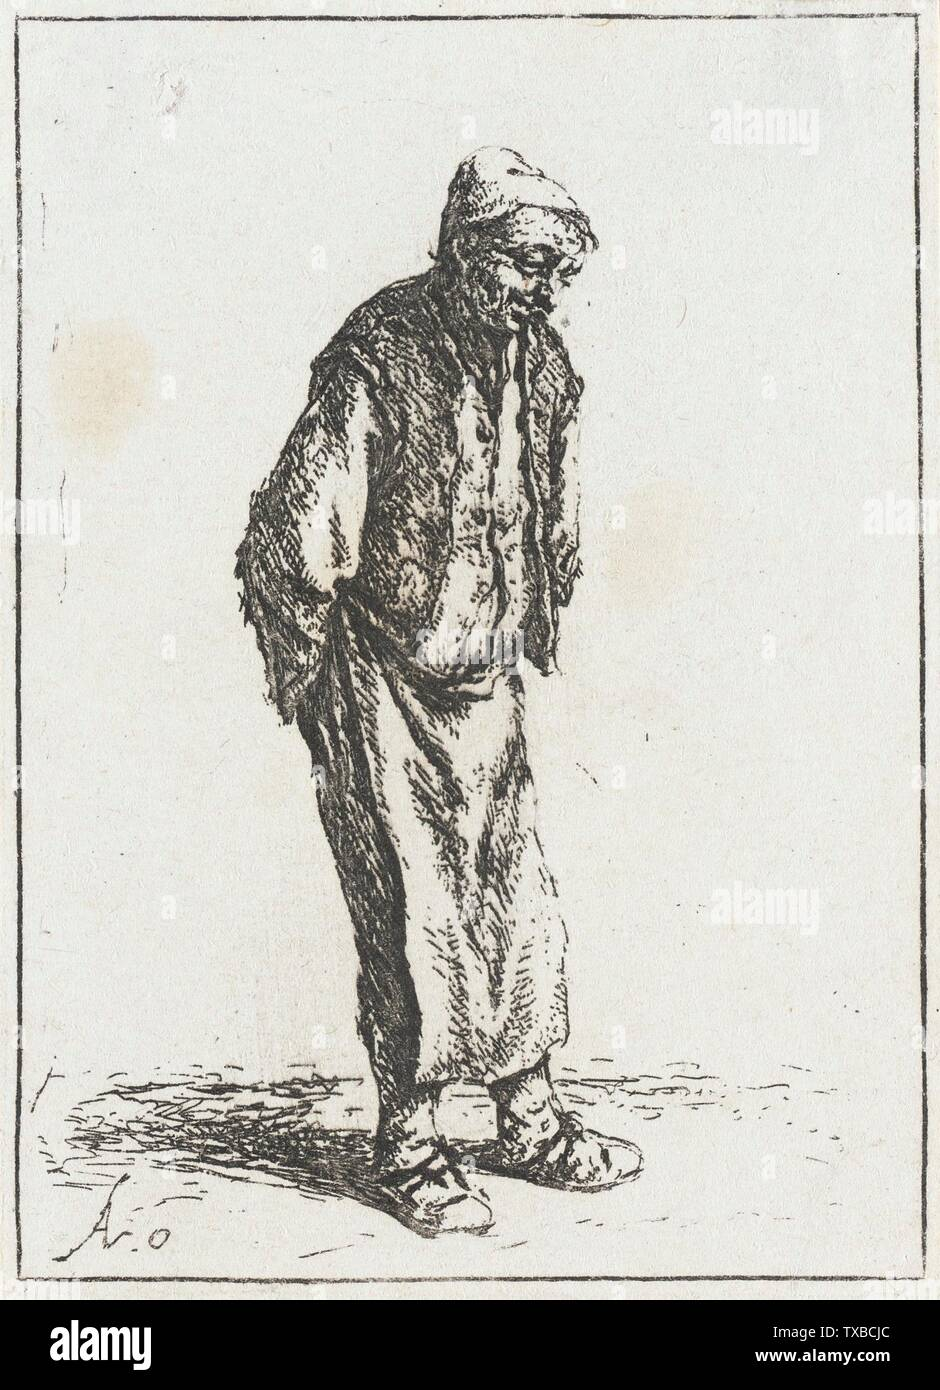 'Peasant with His Hands Behind His Back; English:  Holland, 1640 (?) Alternate Title: Le Paysan debout les mains derrière le dos Prints; etchings Etching Gift of Mrs. Mary B. Regan (31.21.91) Prints and Drawings; 1640 (?); ' - Stock Image